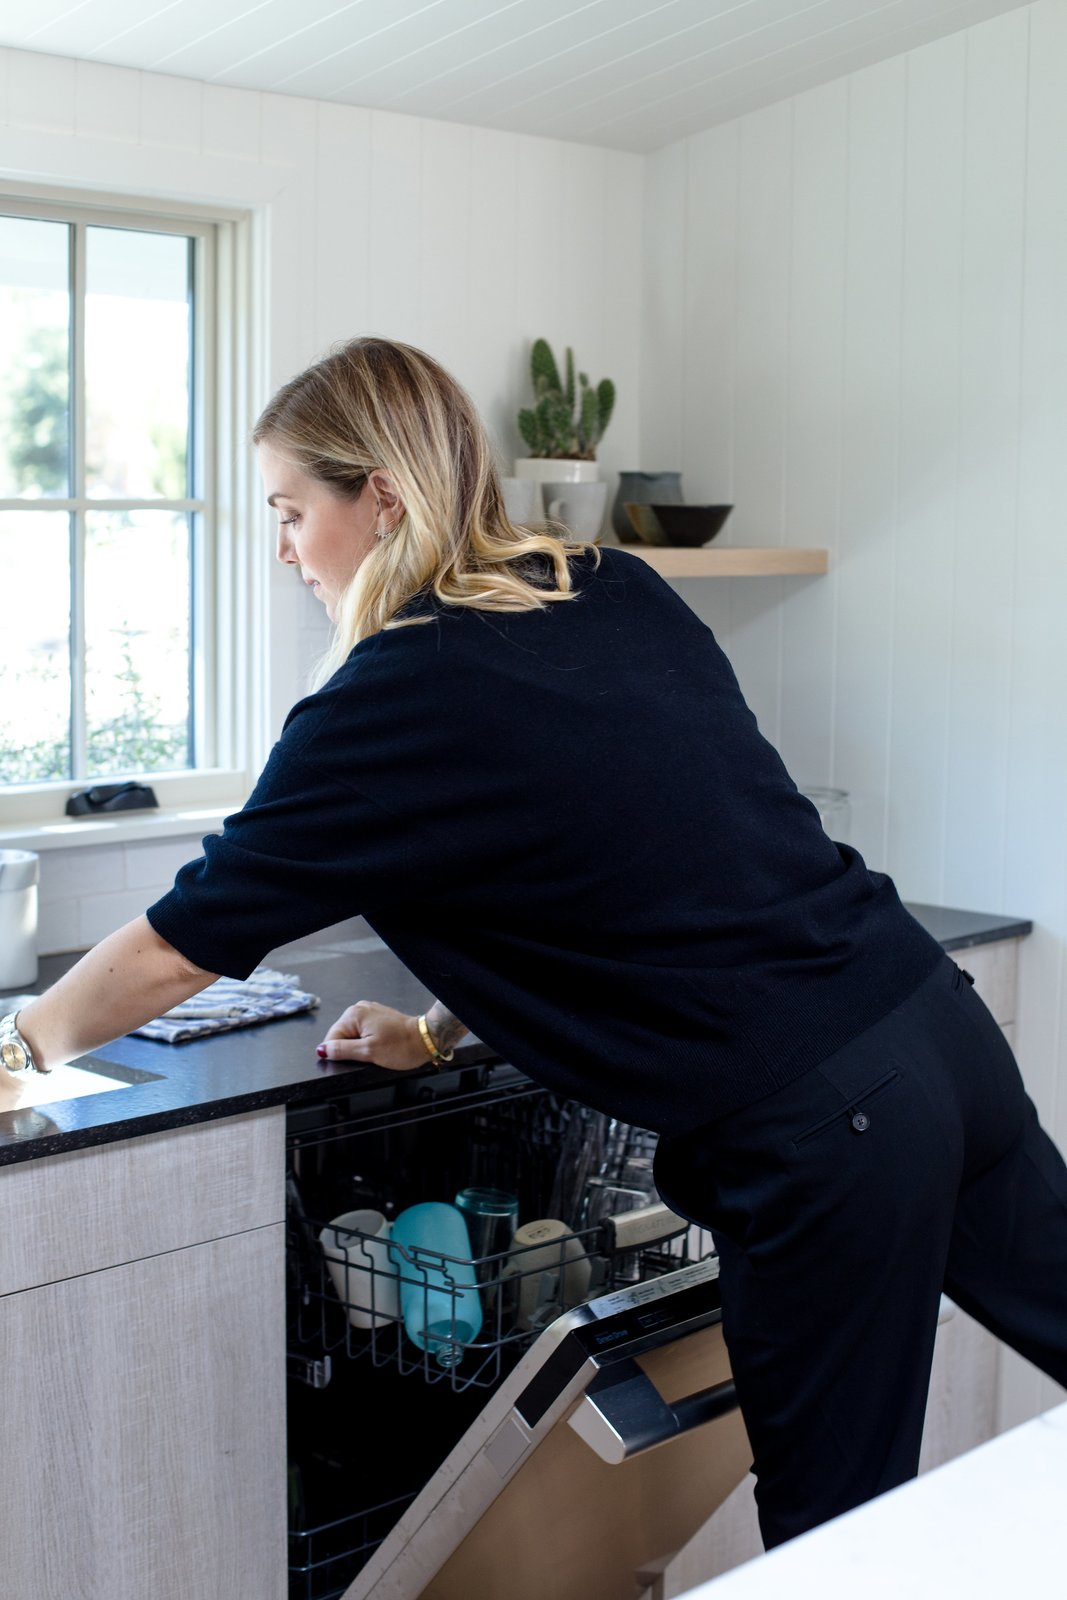 The Signature Kitchen Suite dishwasher uses PowerSteam™ technology and the versatile QuadWash™ Spray Arm to get dishes clean and sparkling.  Cooking Up Style by Dwell